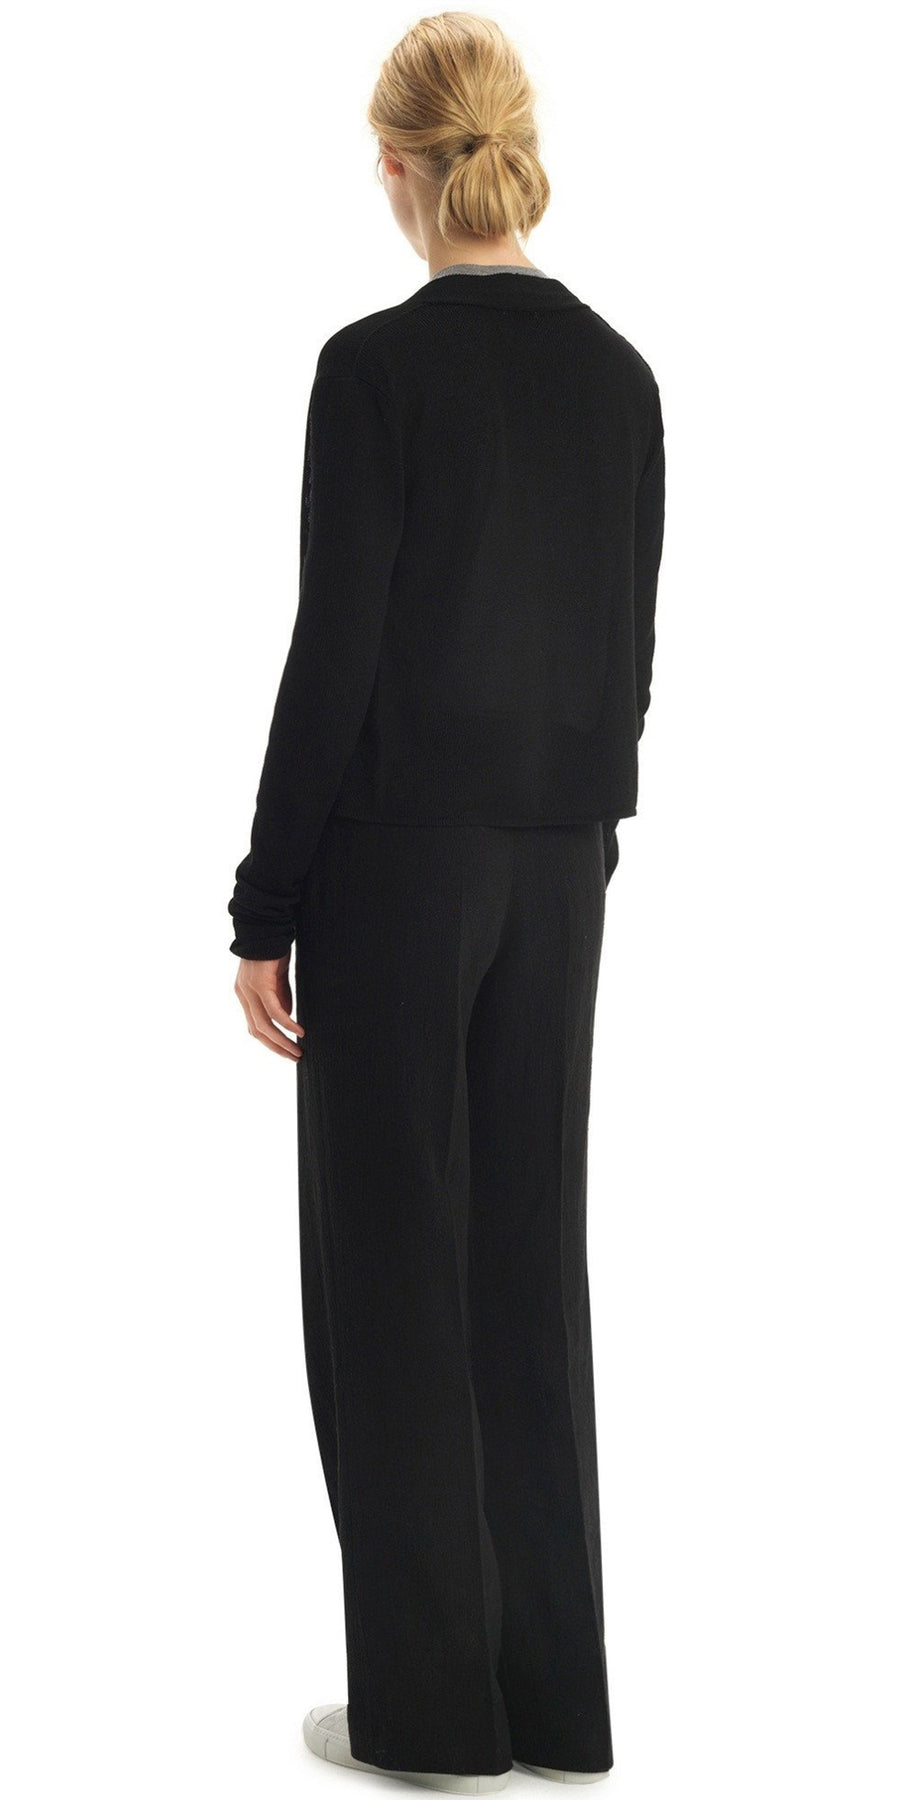 SILK GUIMARD BLACK CARDIGAN